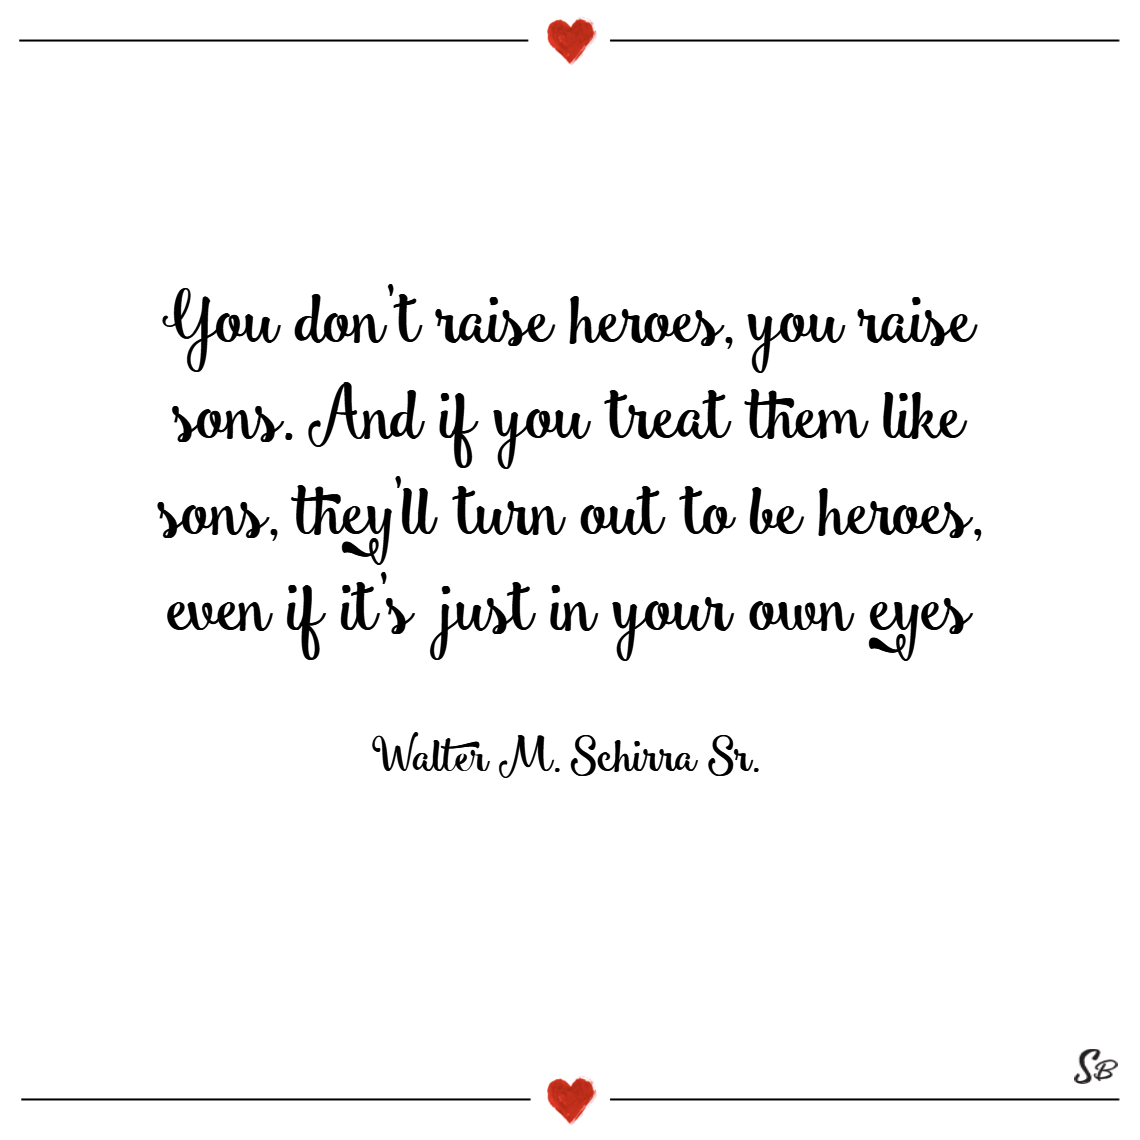 Quotes About Your Son: 31 Heart-Warming Mother And Son Quotes